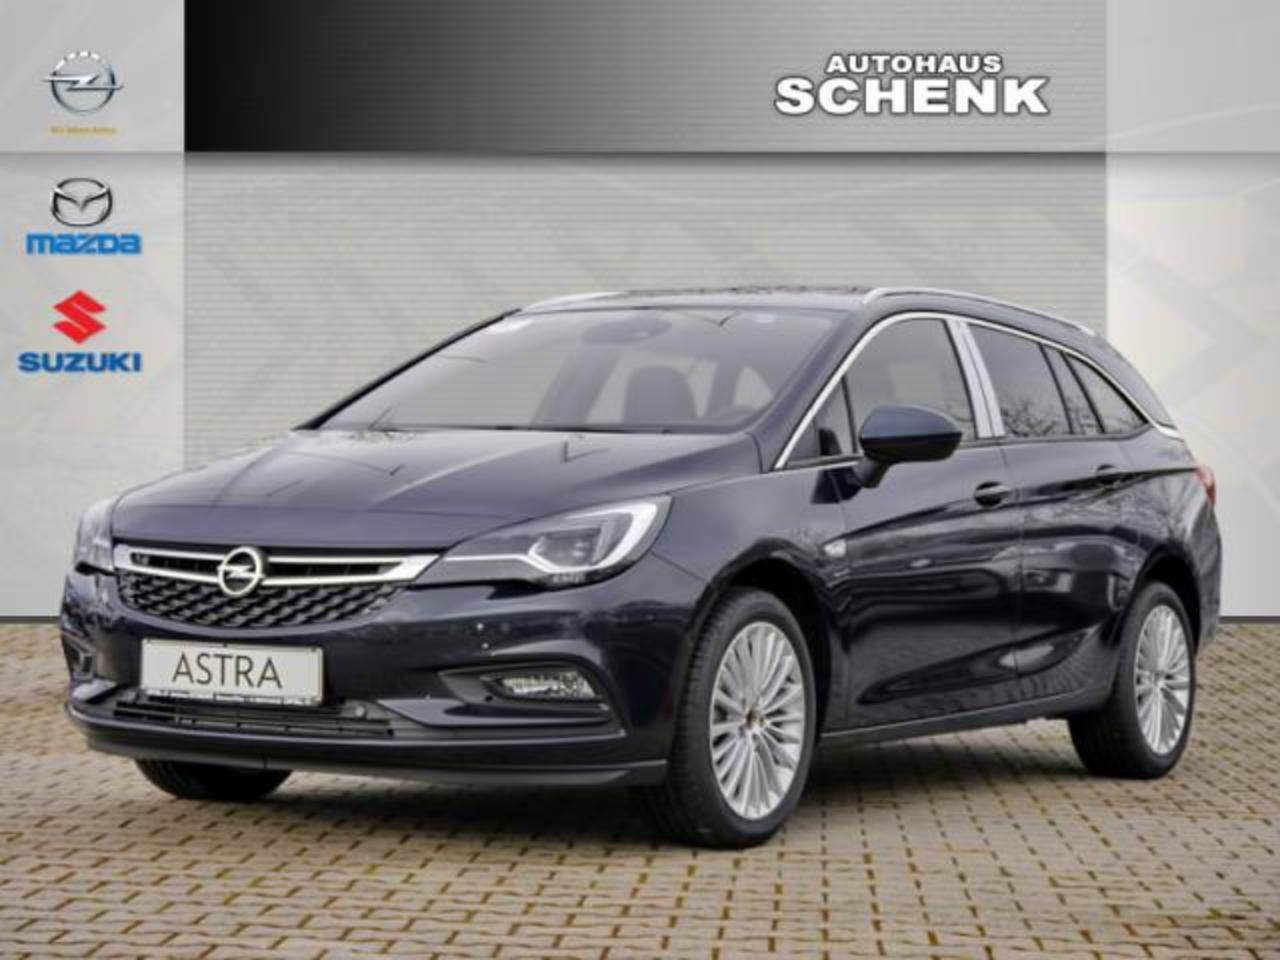 Opel Astra SPORTS TOURER ULTIMATE 1.4 DIRECT INJECTION TURBO,